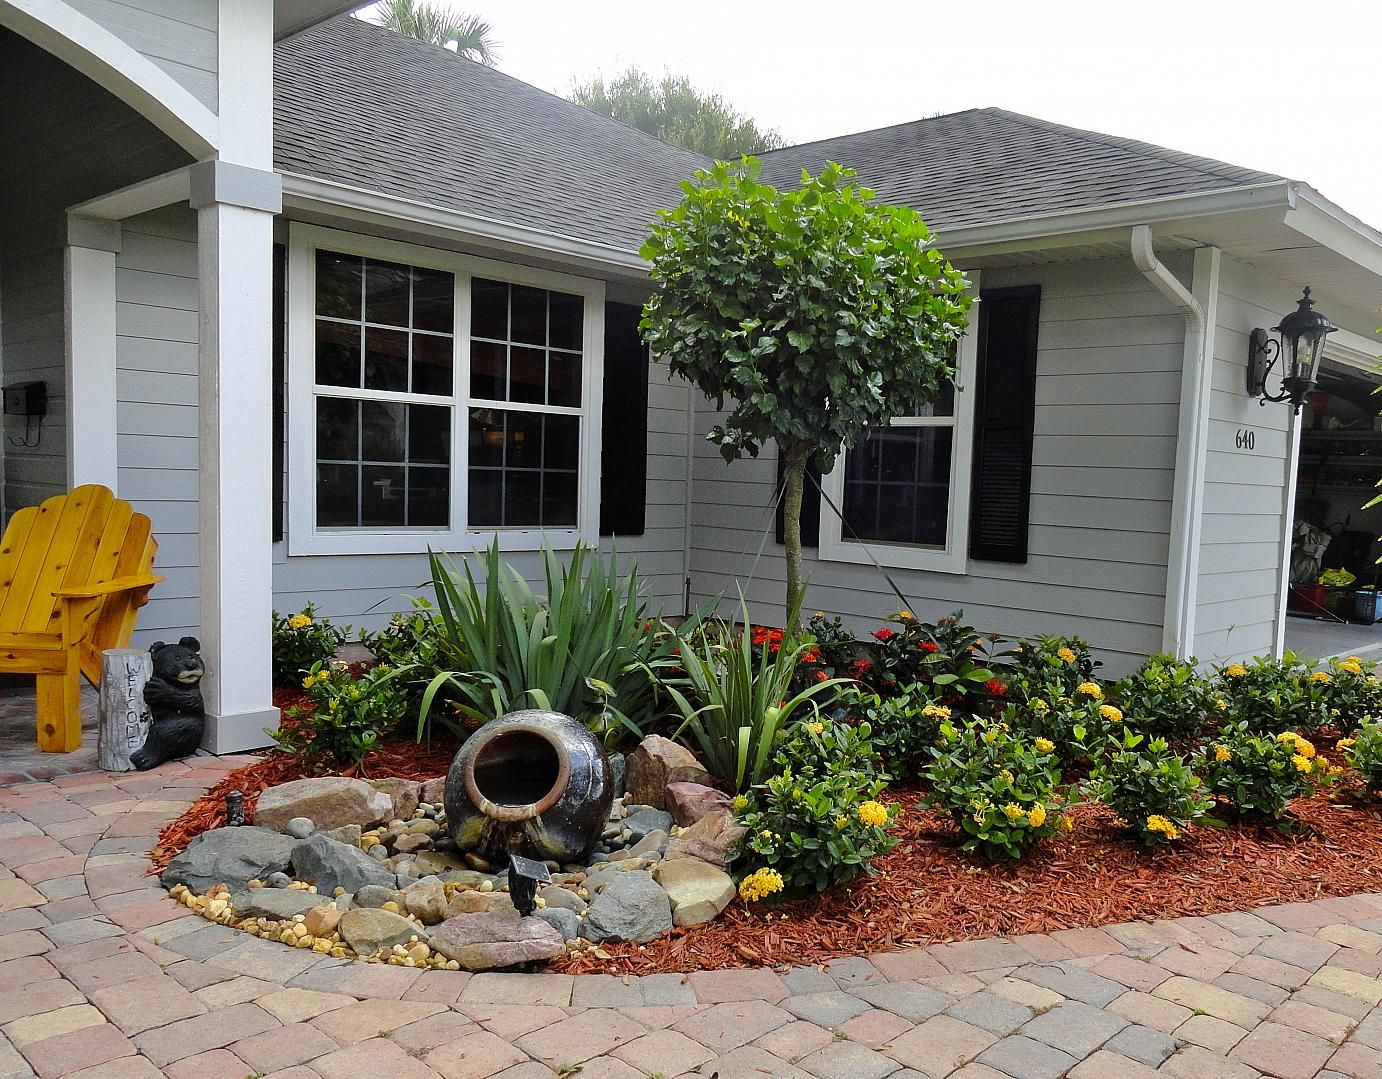 Small front garden ideas no grass - Ideas For Front Yard Landscaping No Grass Garden And Patio Minimalist Rustic Modern House